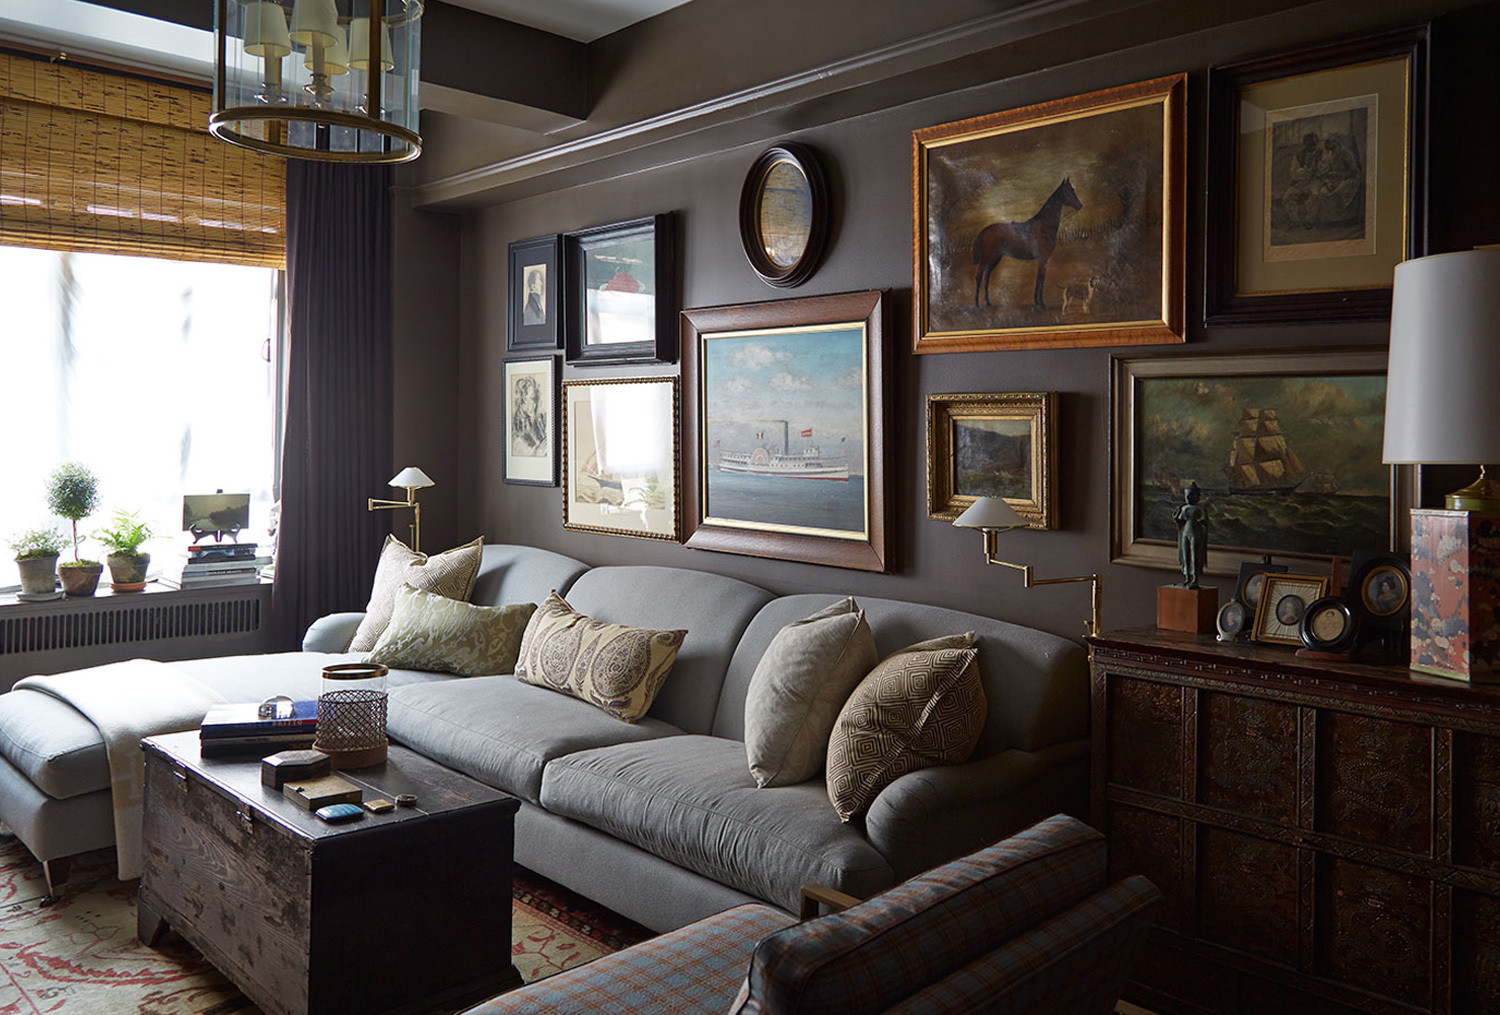 In the study, the Beares' collection of art looks polished yet unstuffy when hung in an informal arrangement.